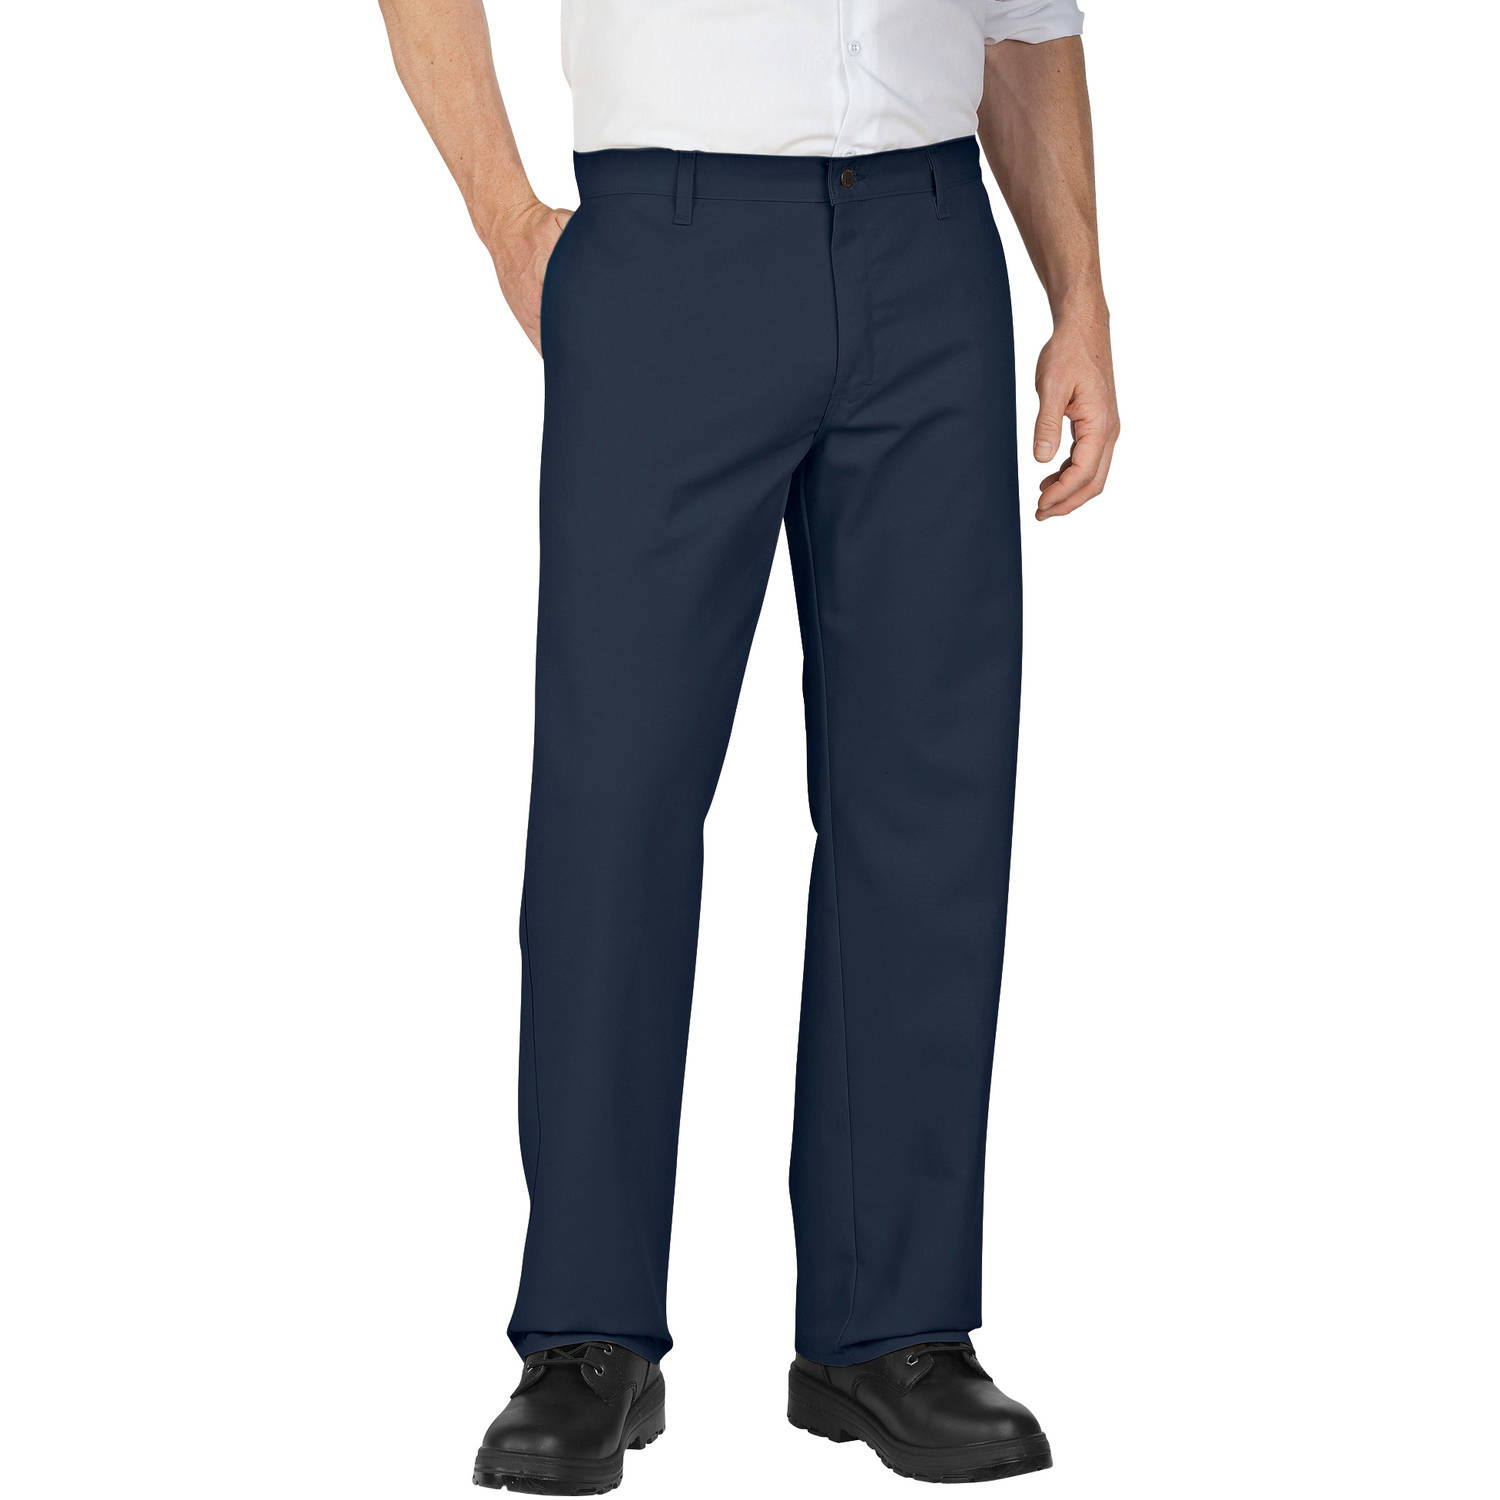 Genuine Dickies Men's Relaxed Fit Easy Reach Pocket Pant